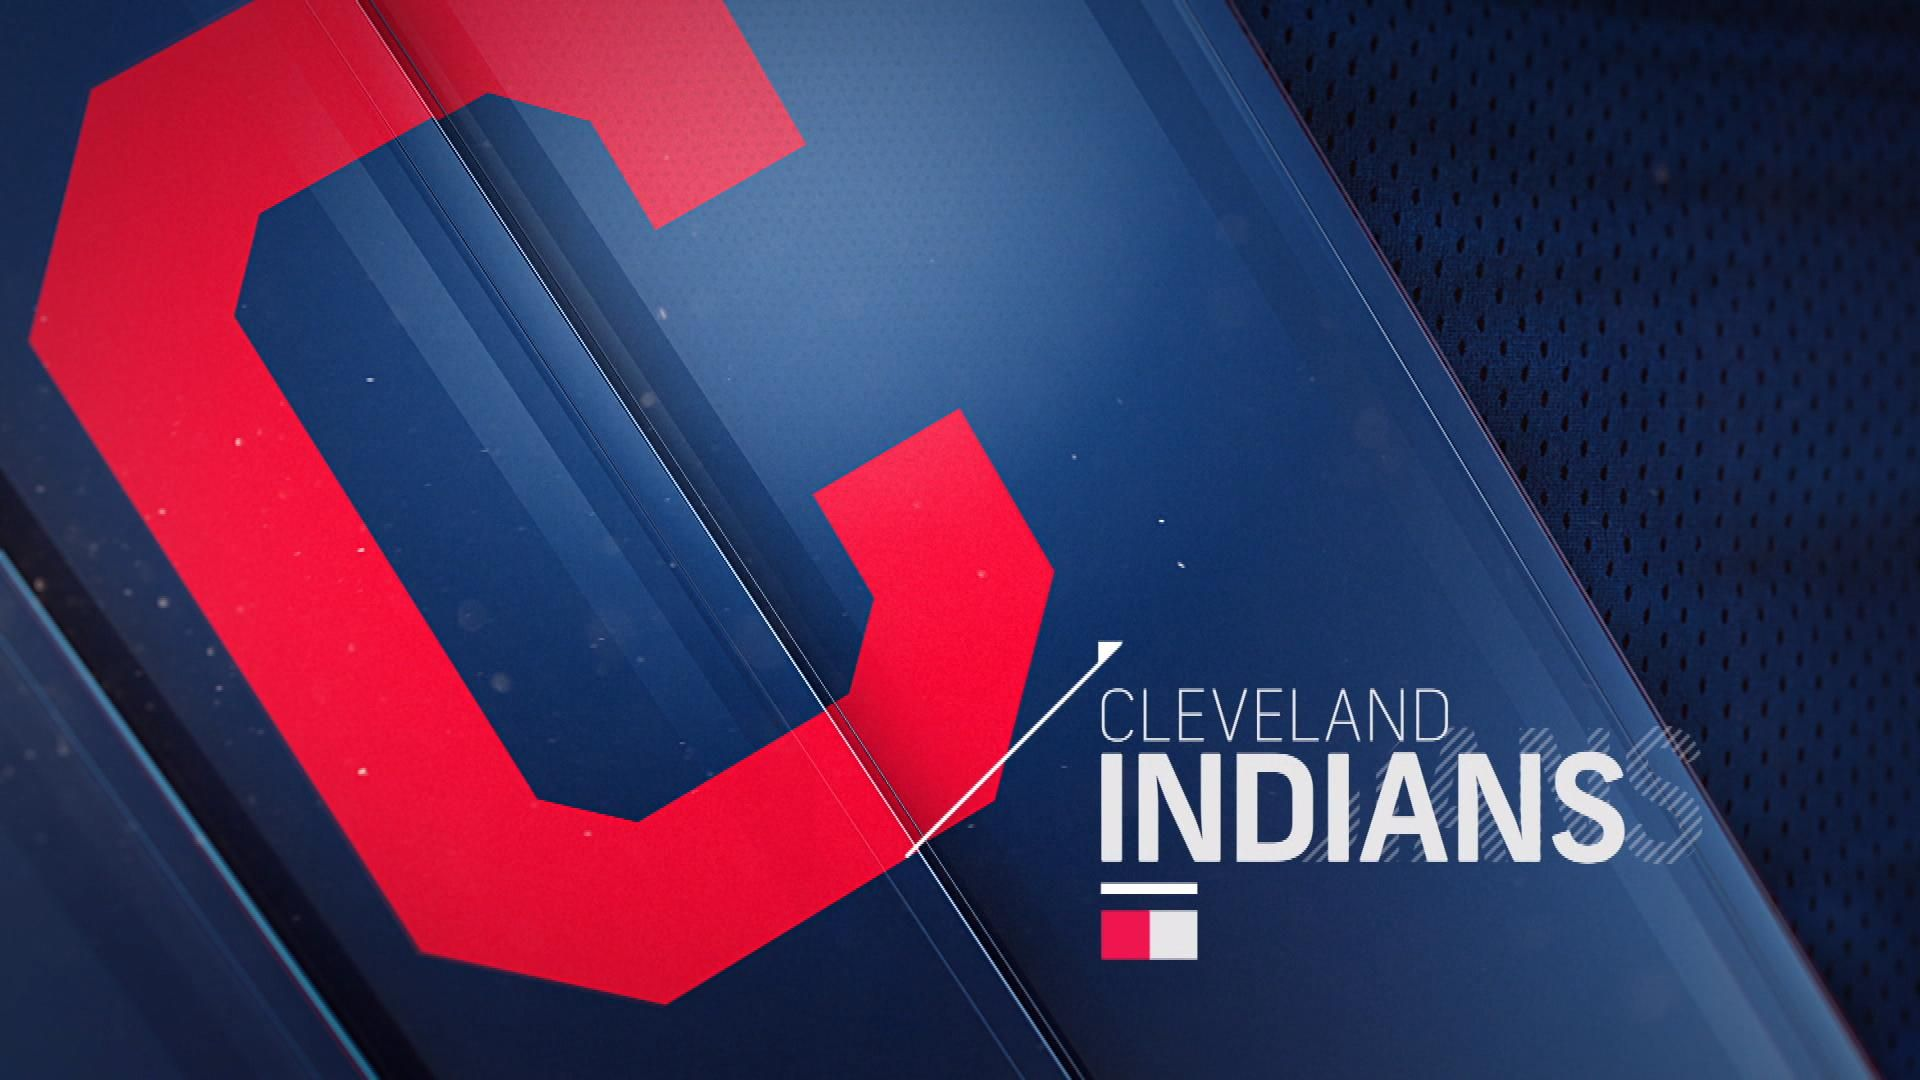 1920x1080 - Cleveland Indians Wallpapers 17